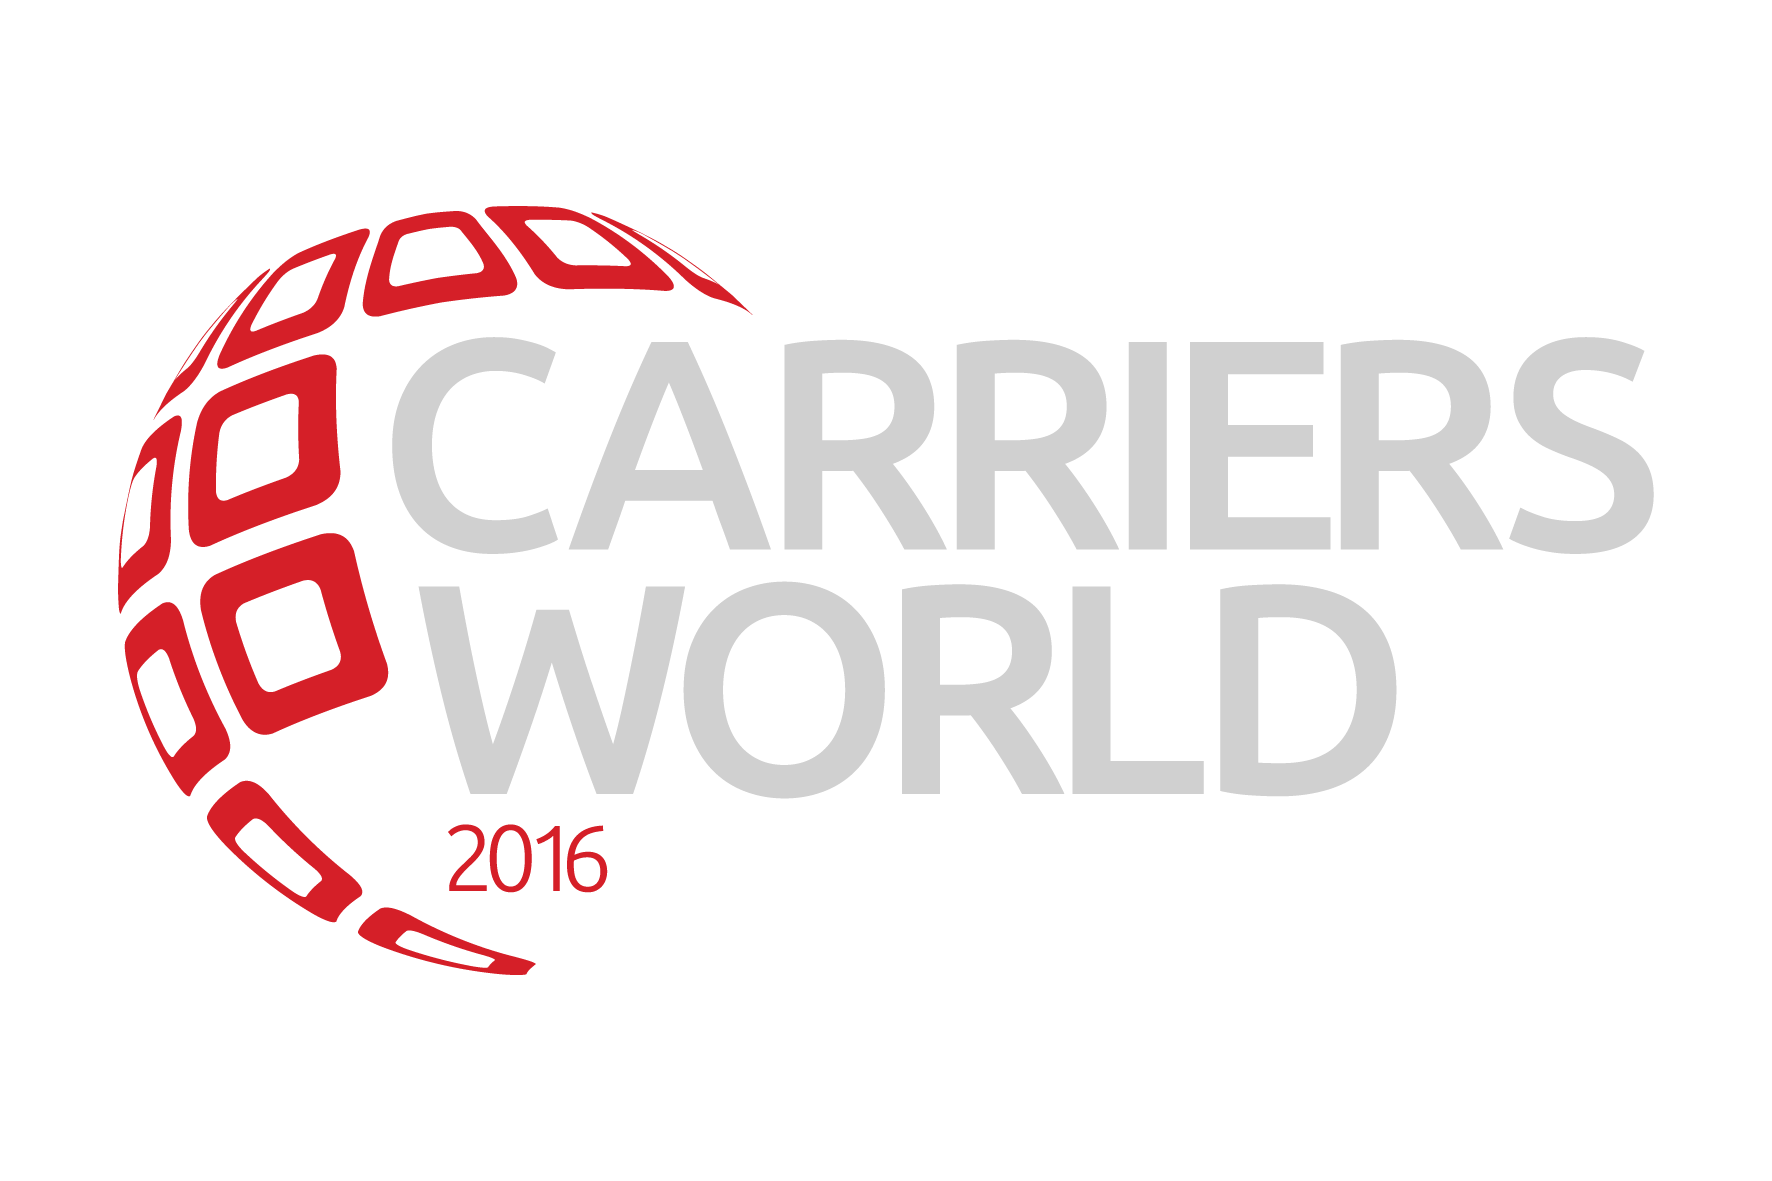 Carriers World 2016 logo